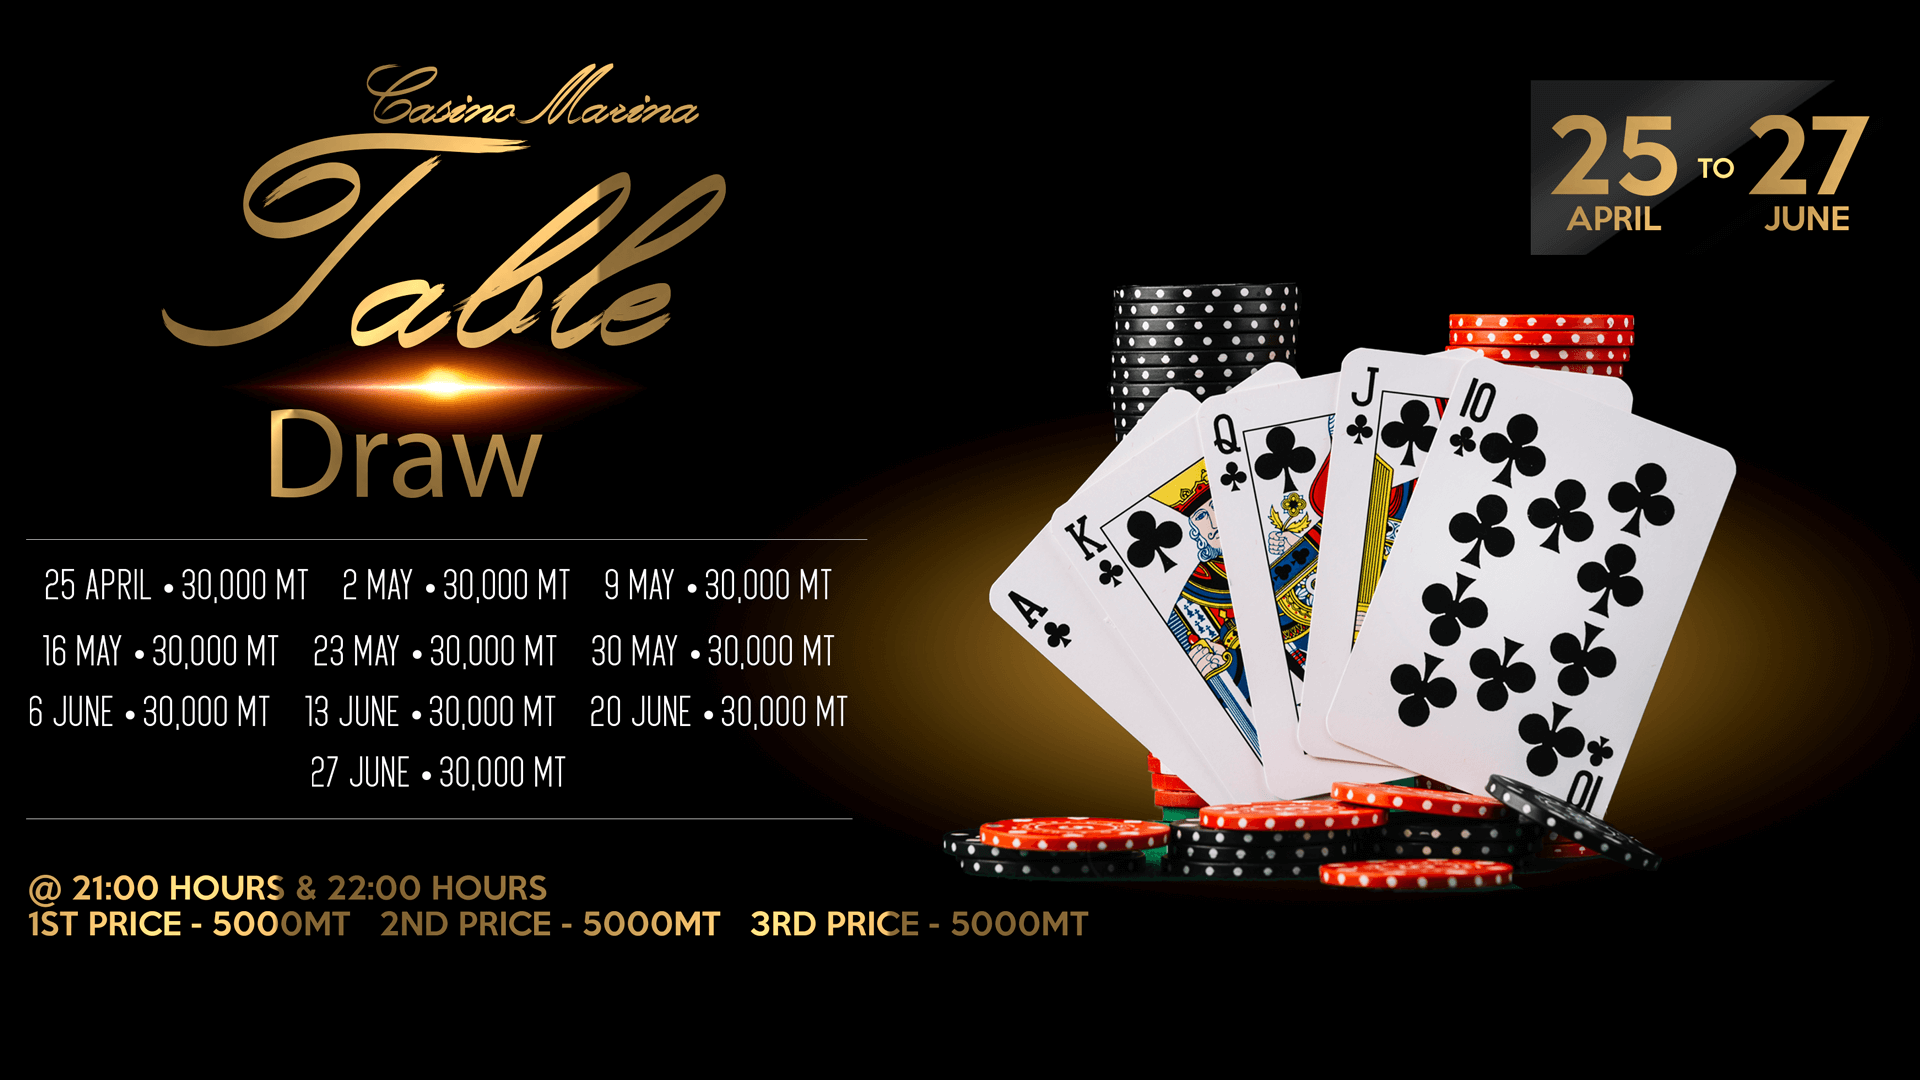 Casino Marina Table Grand draw